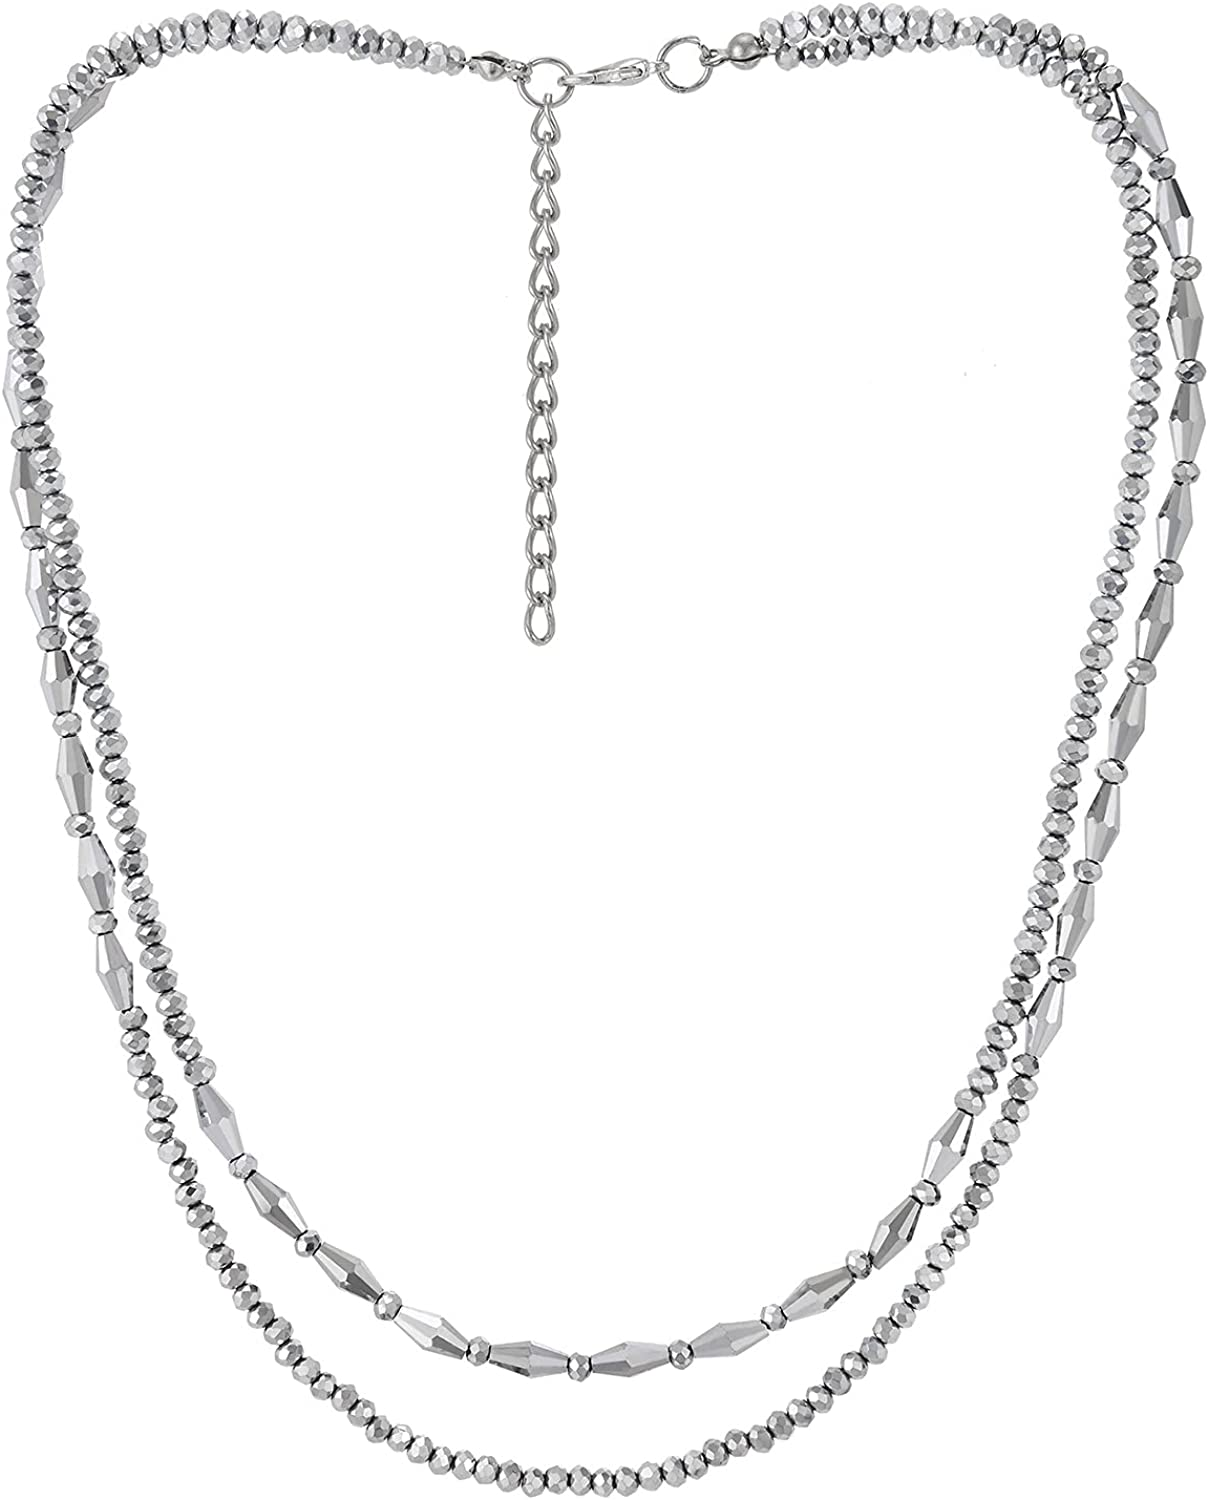 Grey Statement Choker Collar Necklace Two-Strand Faceted Rhinestones Beads Chains Pendant, Unique